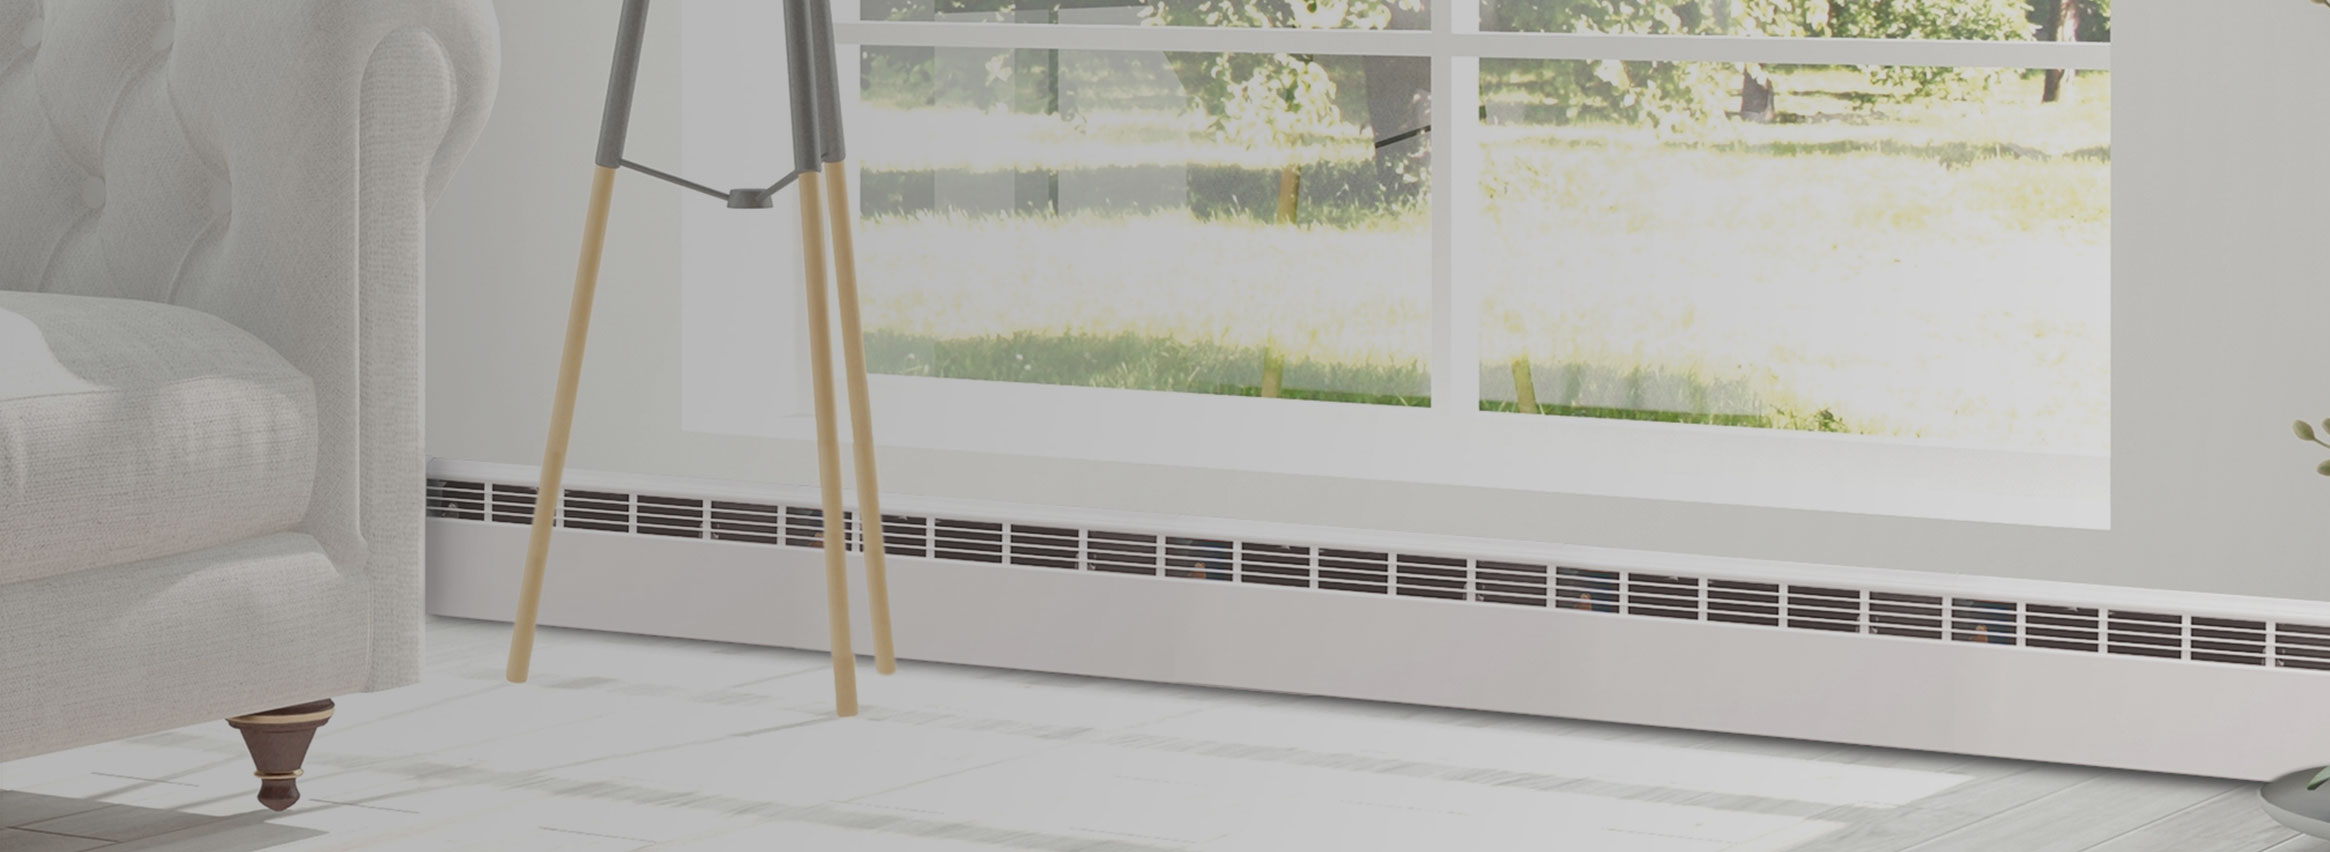 Baseboard Heater Wiring Diagram In Addition Hydronic Baseboard Heater